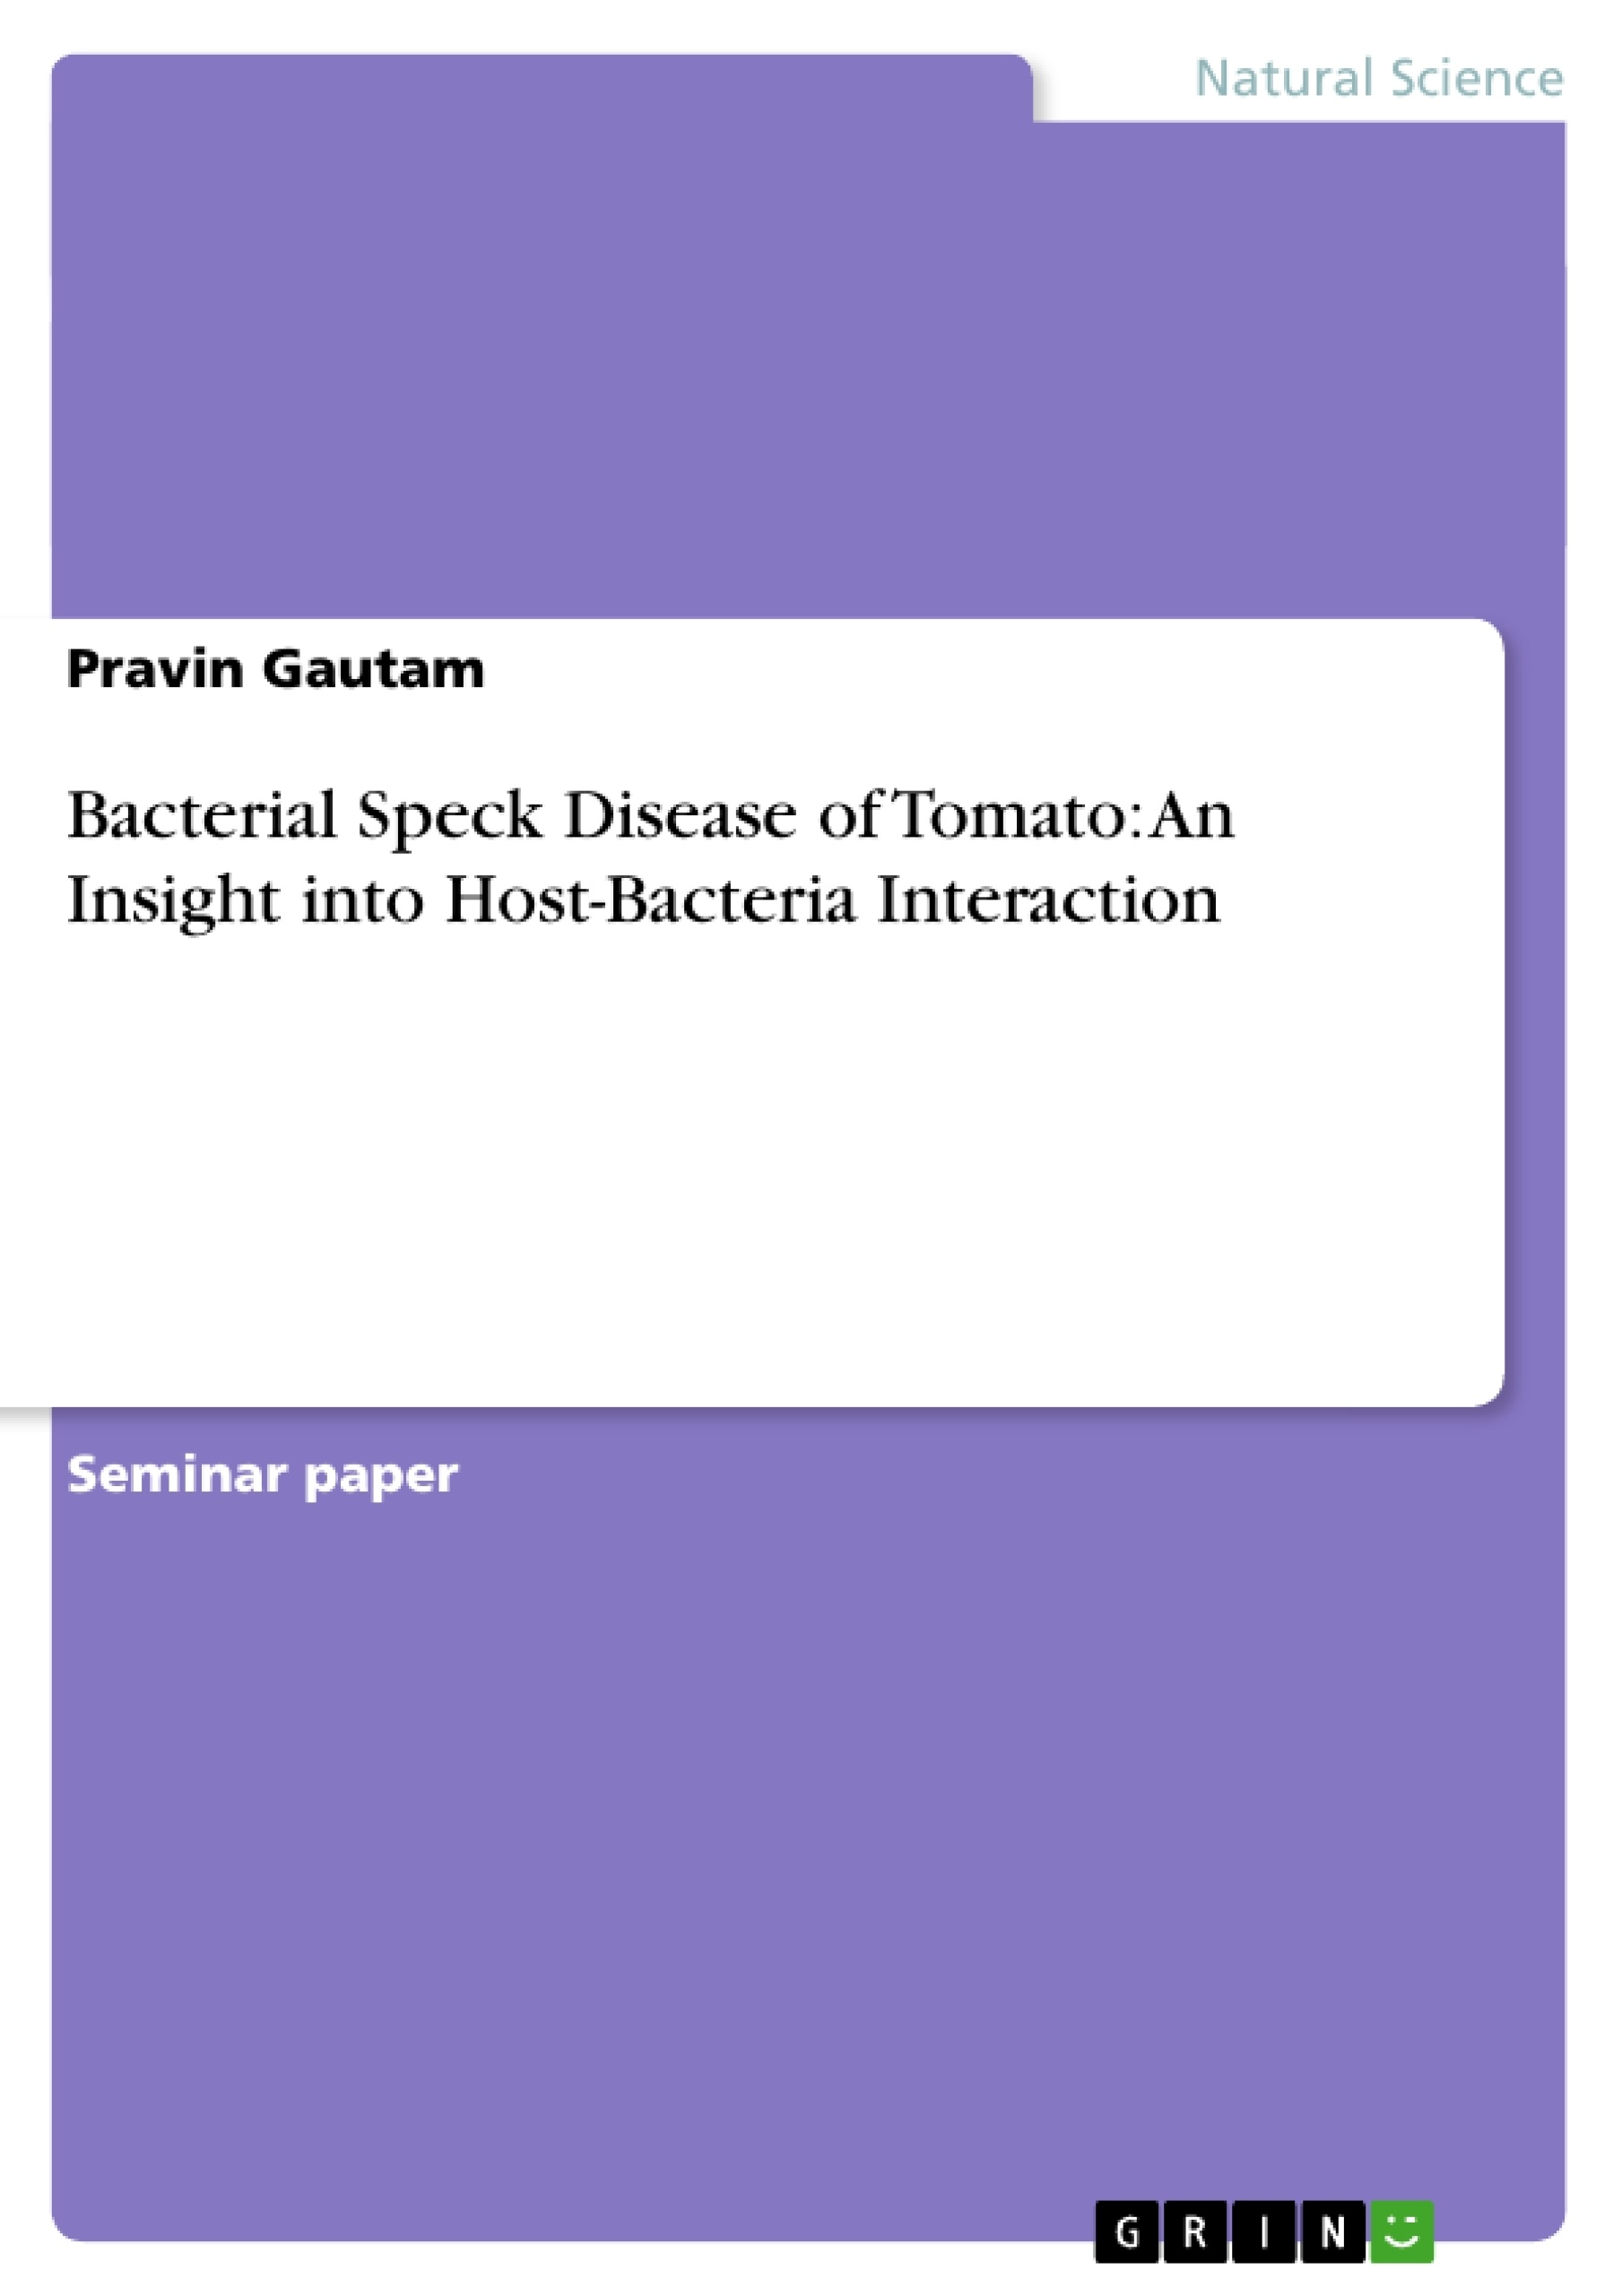 Title: Bacterial Speck Disease of Tomato: An Insight into Host-Bacteria Interaction